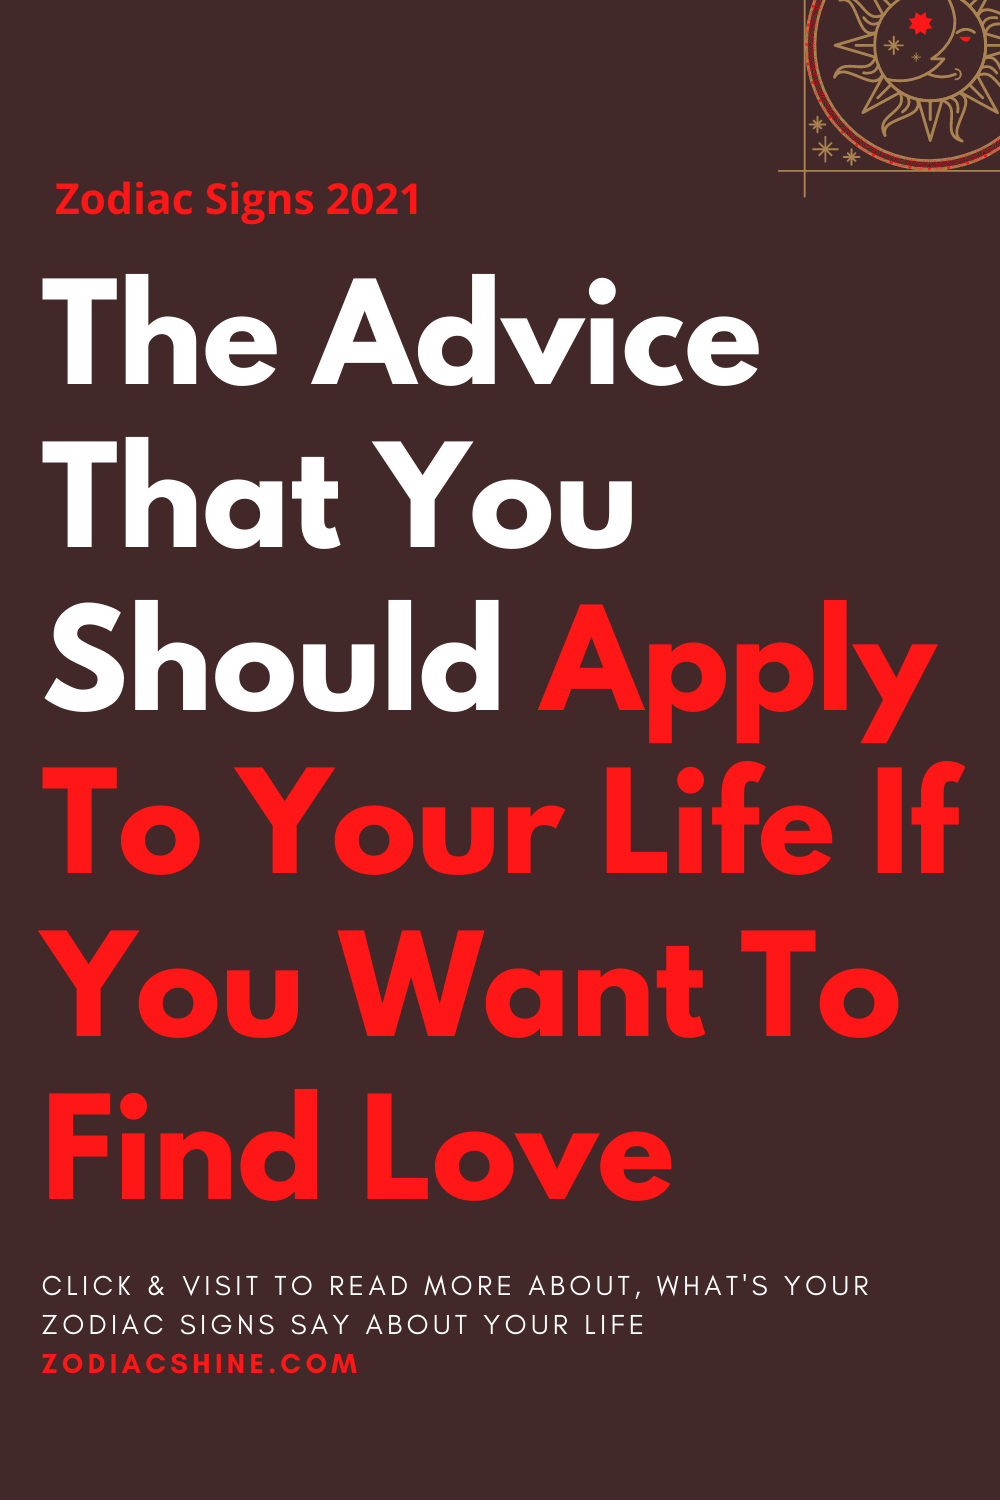 The Advice That You Should Apply To Your Life If You Want To Find Love